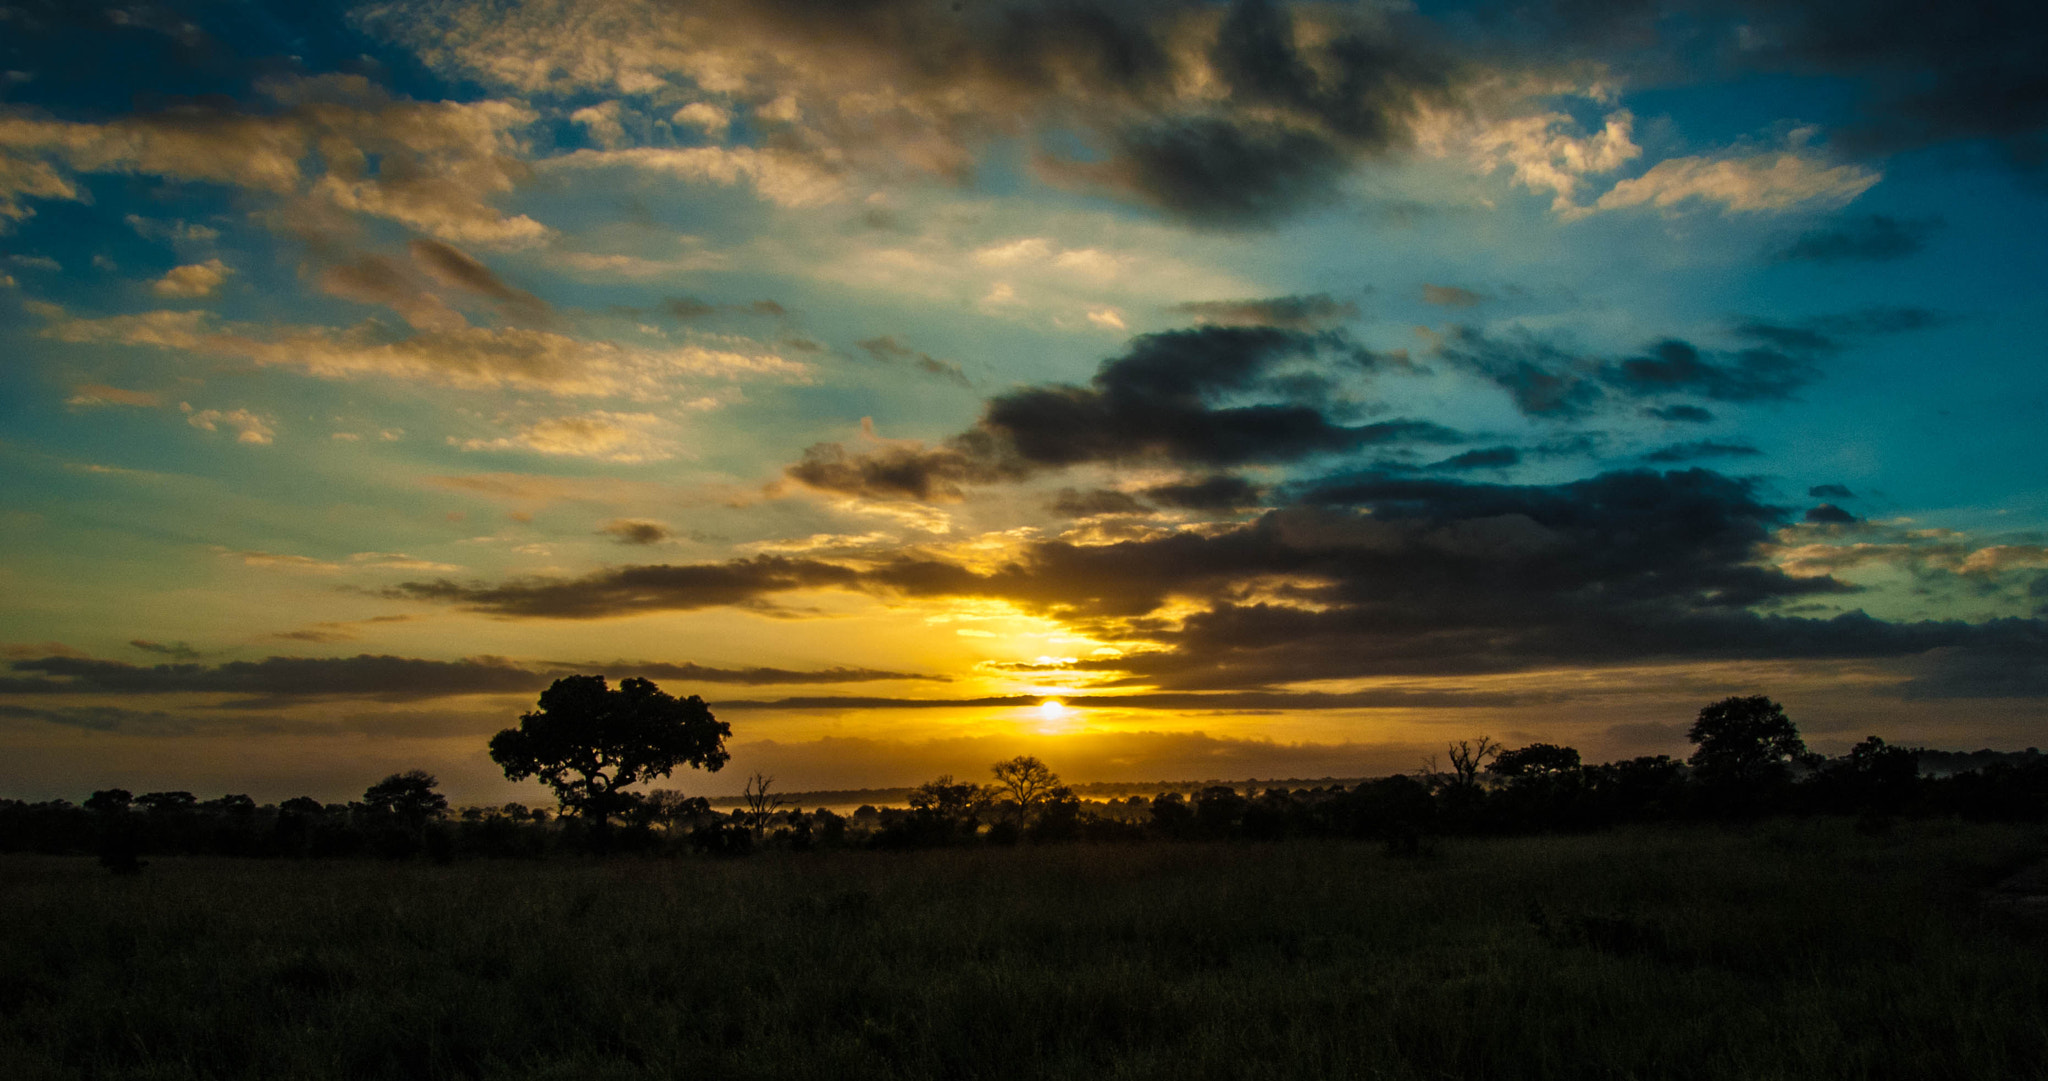 Photograph Sunrise @ Idube Game Reserve by Andrew Gaylord on 500px